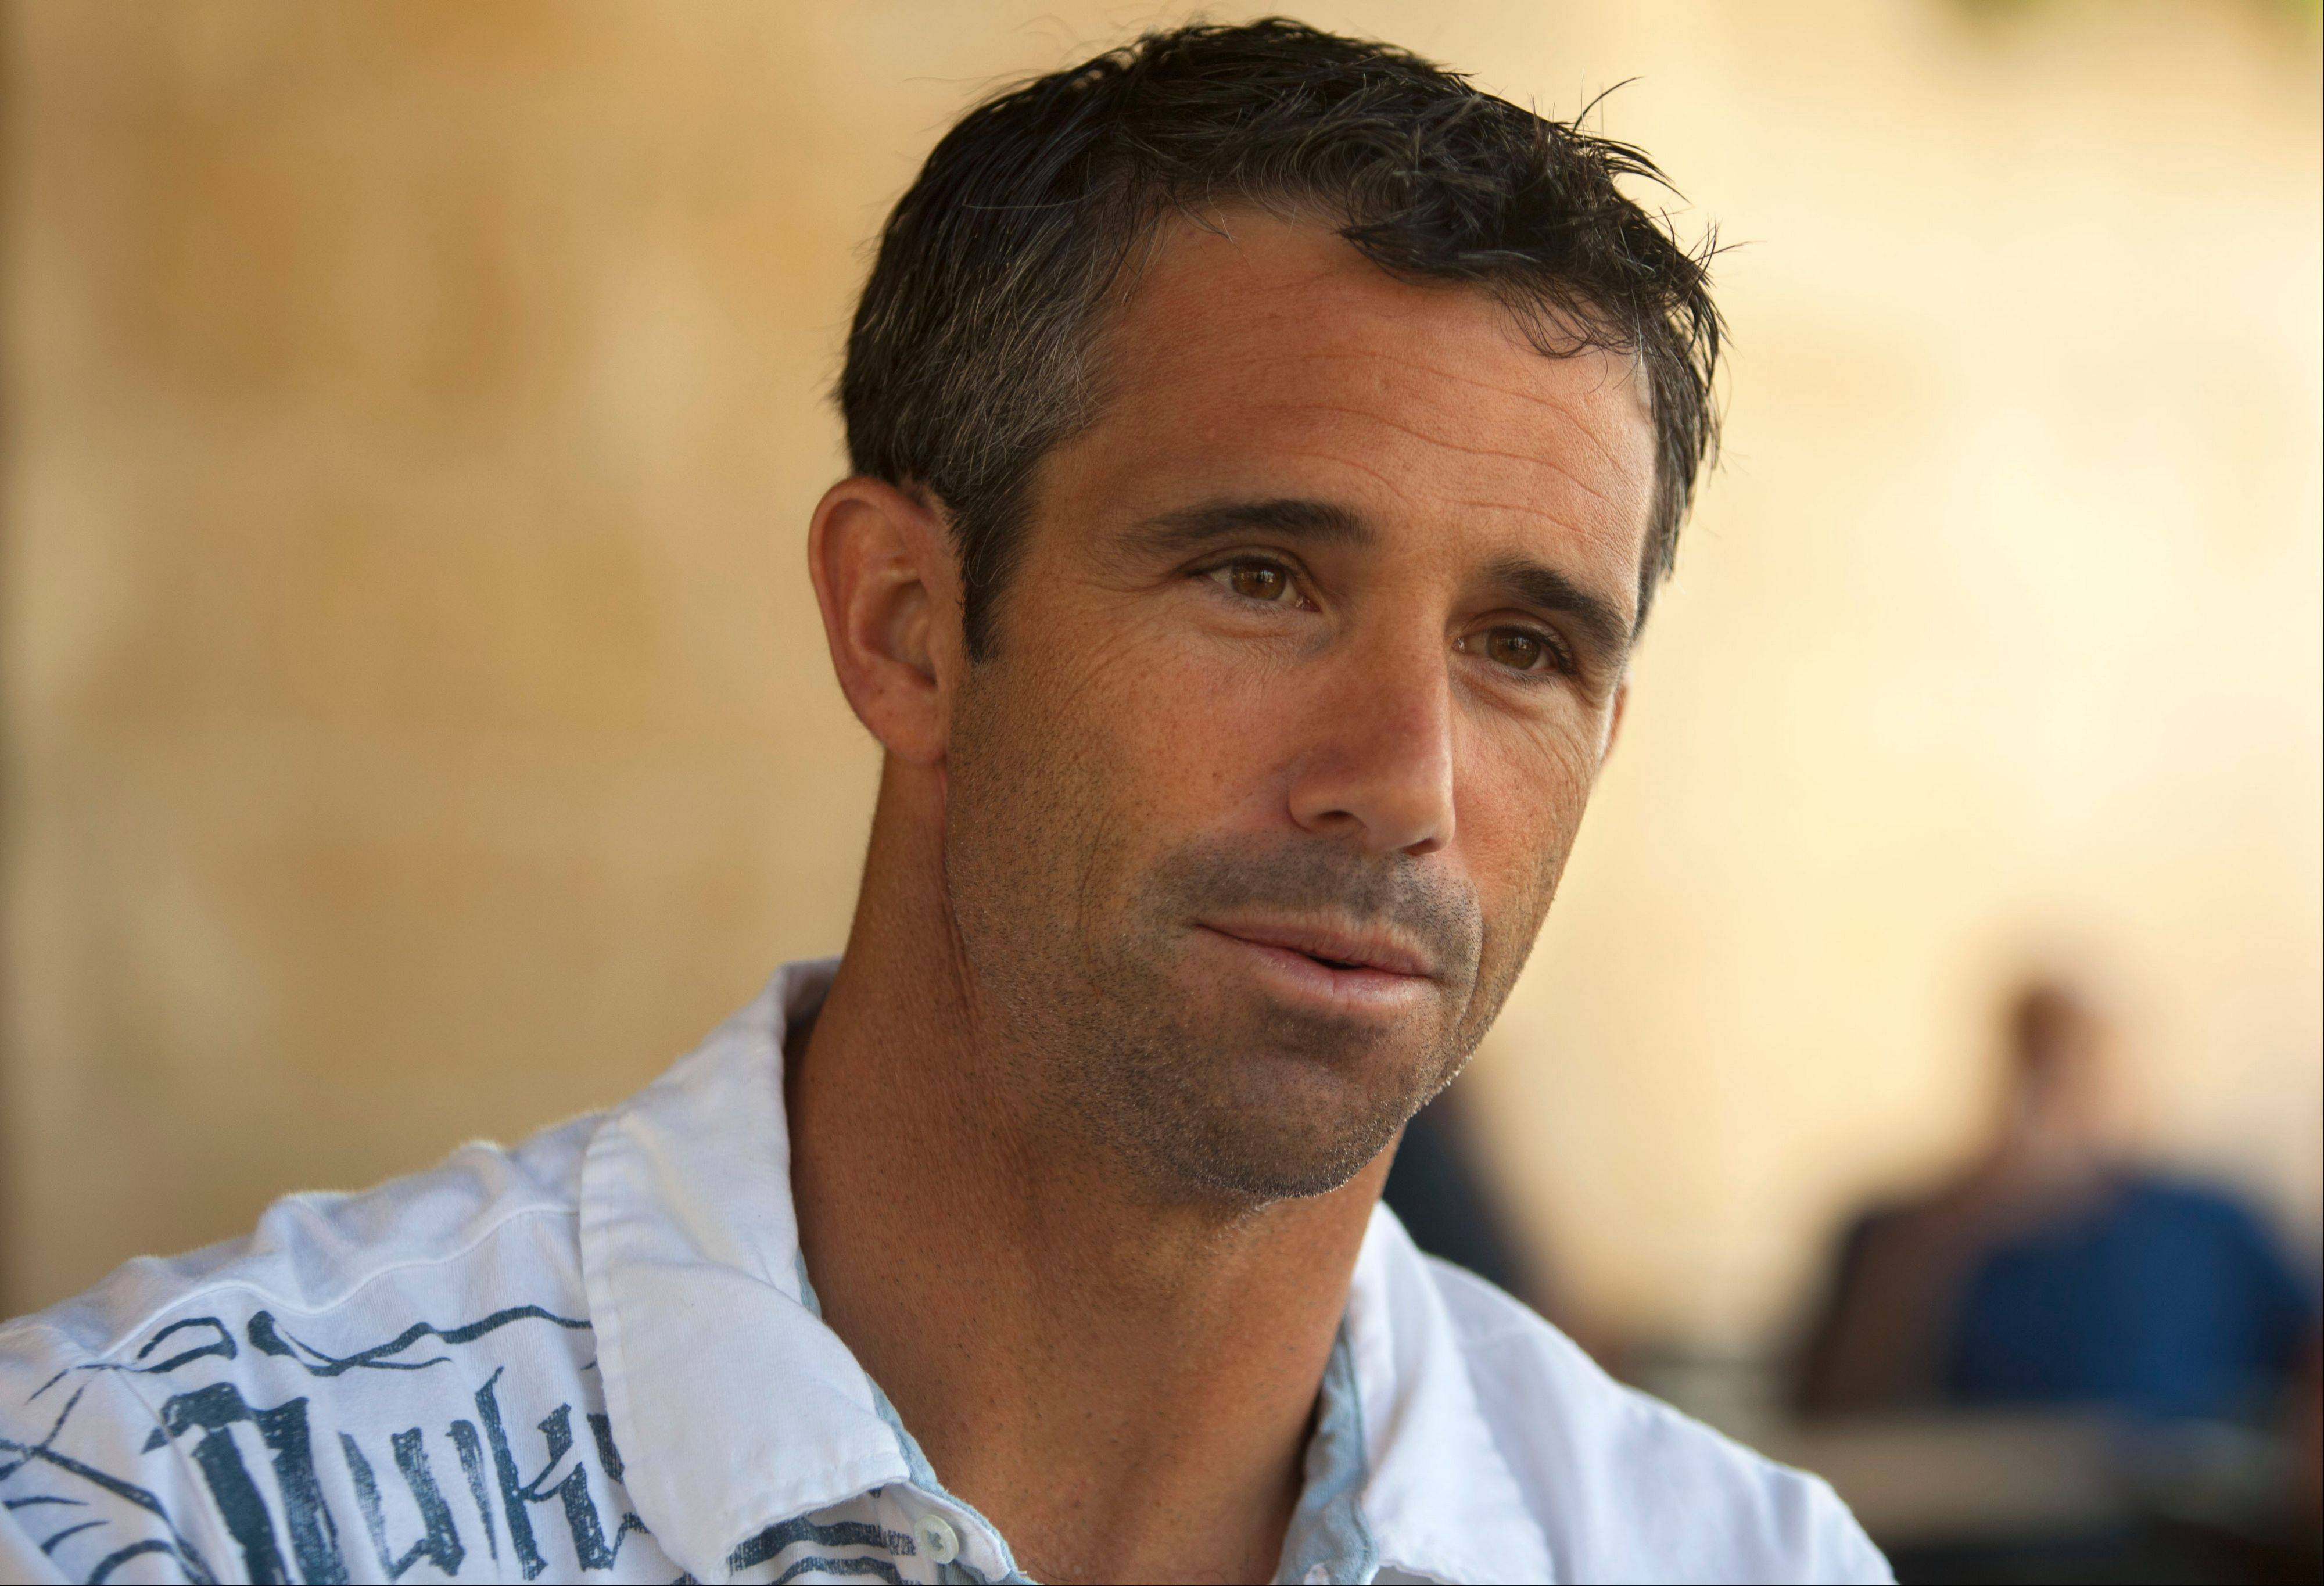 Cubs officials have confirmed that Brad Ausmus has interviewed for the managerial job. Ausmus has not managed a major league club, but he has been a special assistant with San Diego.